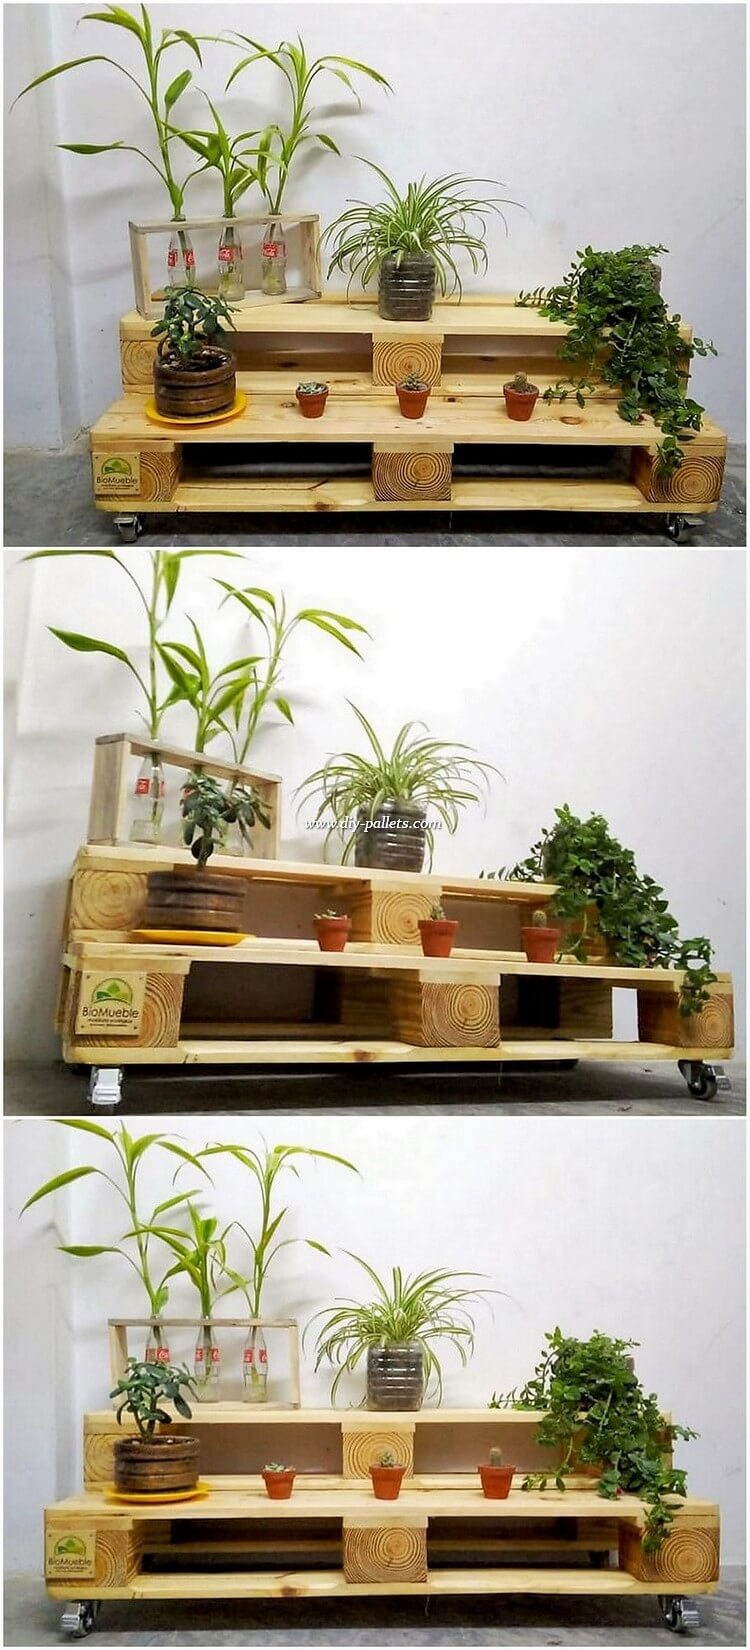 Pallet Pots Stand on Wheels